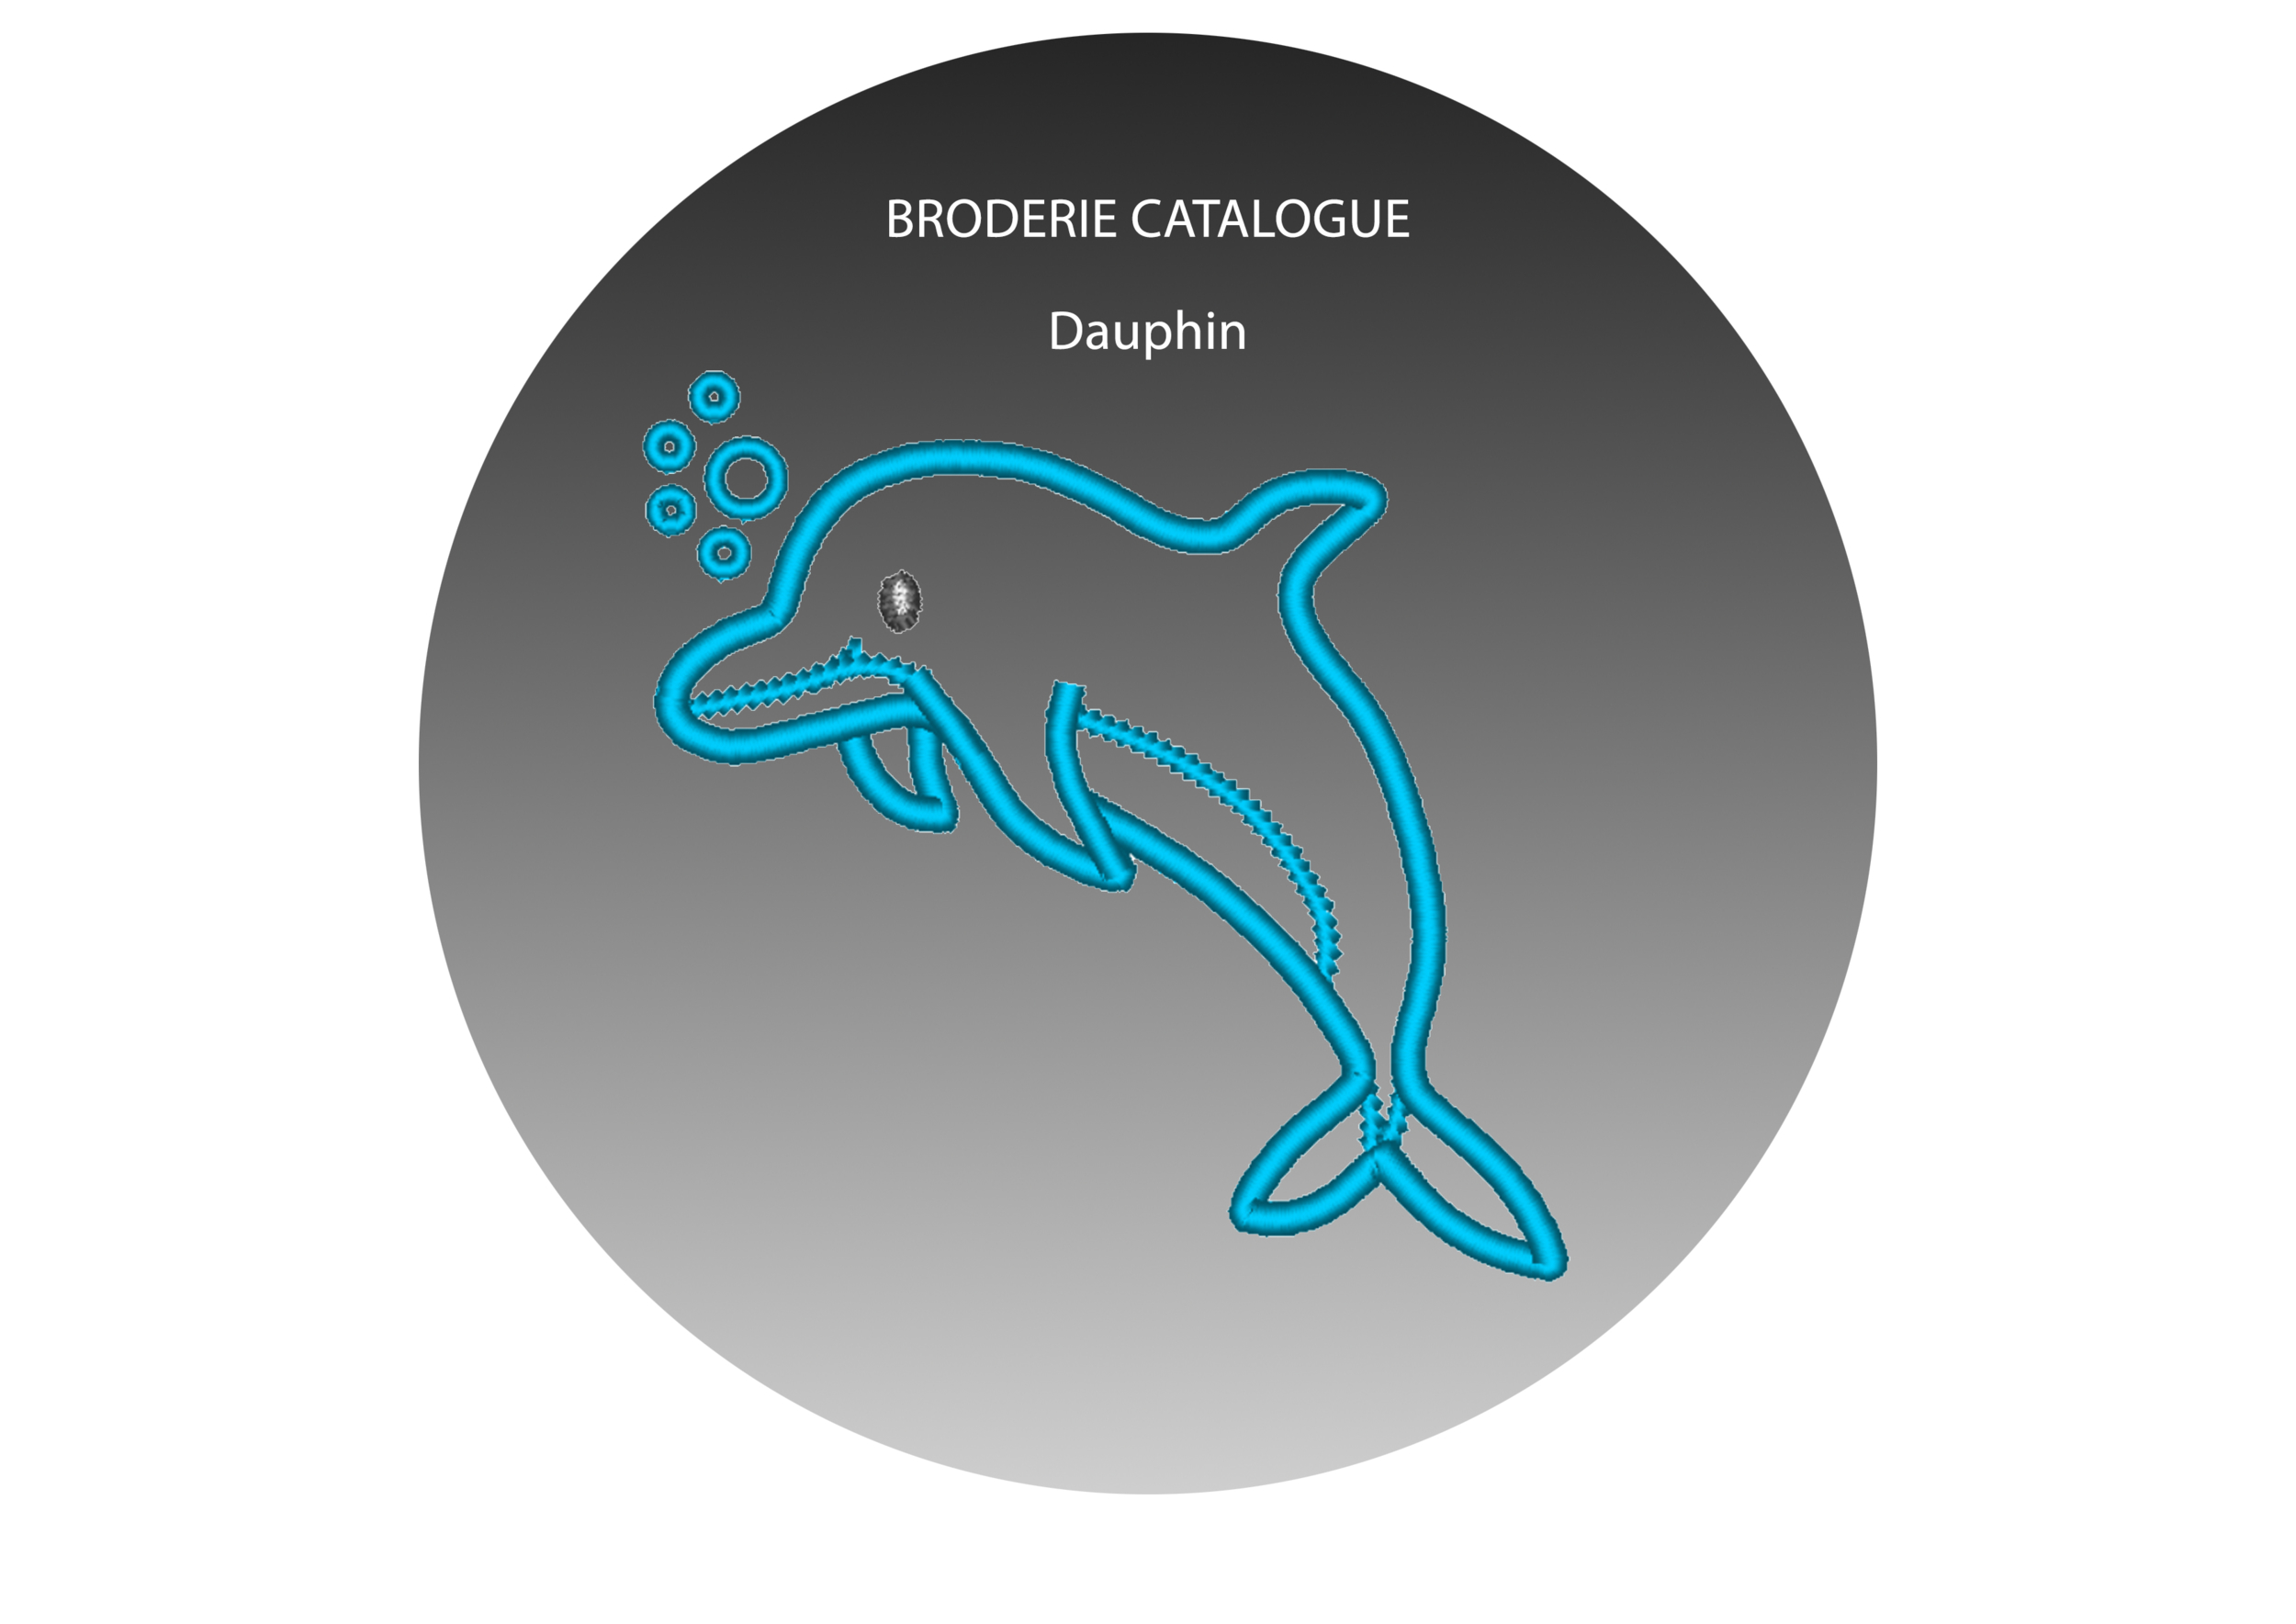 Broderie-catalogue_dauphin